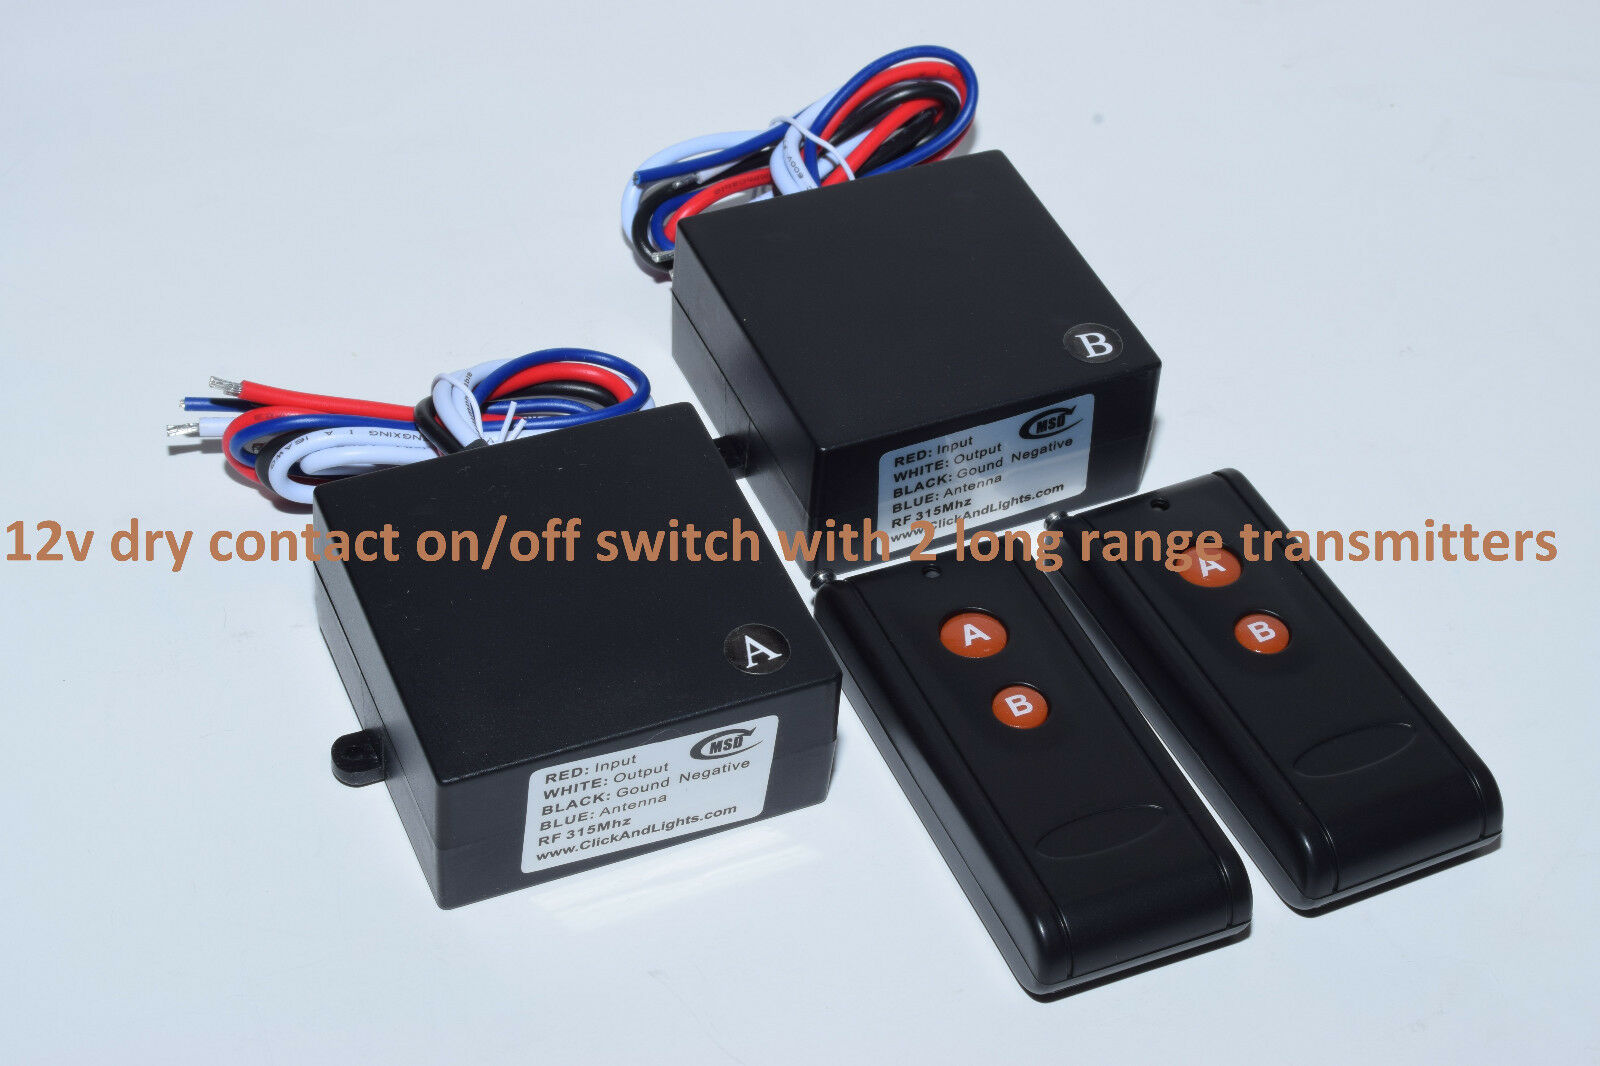 Msd Dry Contact 12v 20a 2ch On/off Relay Switch 2 Long Ra...